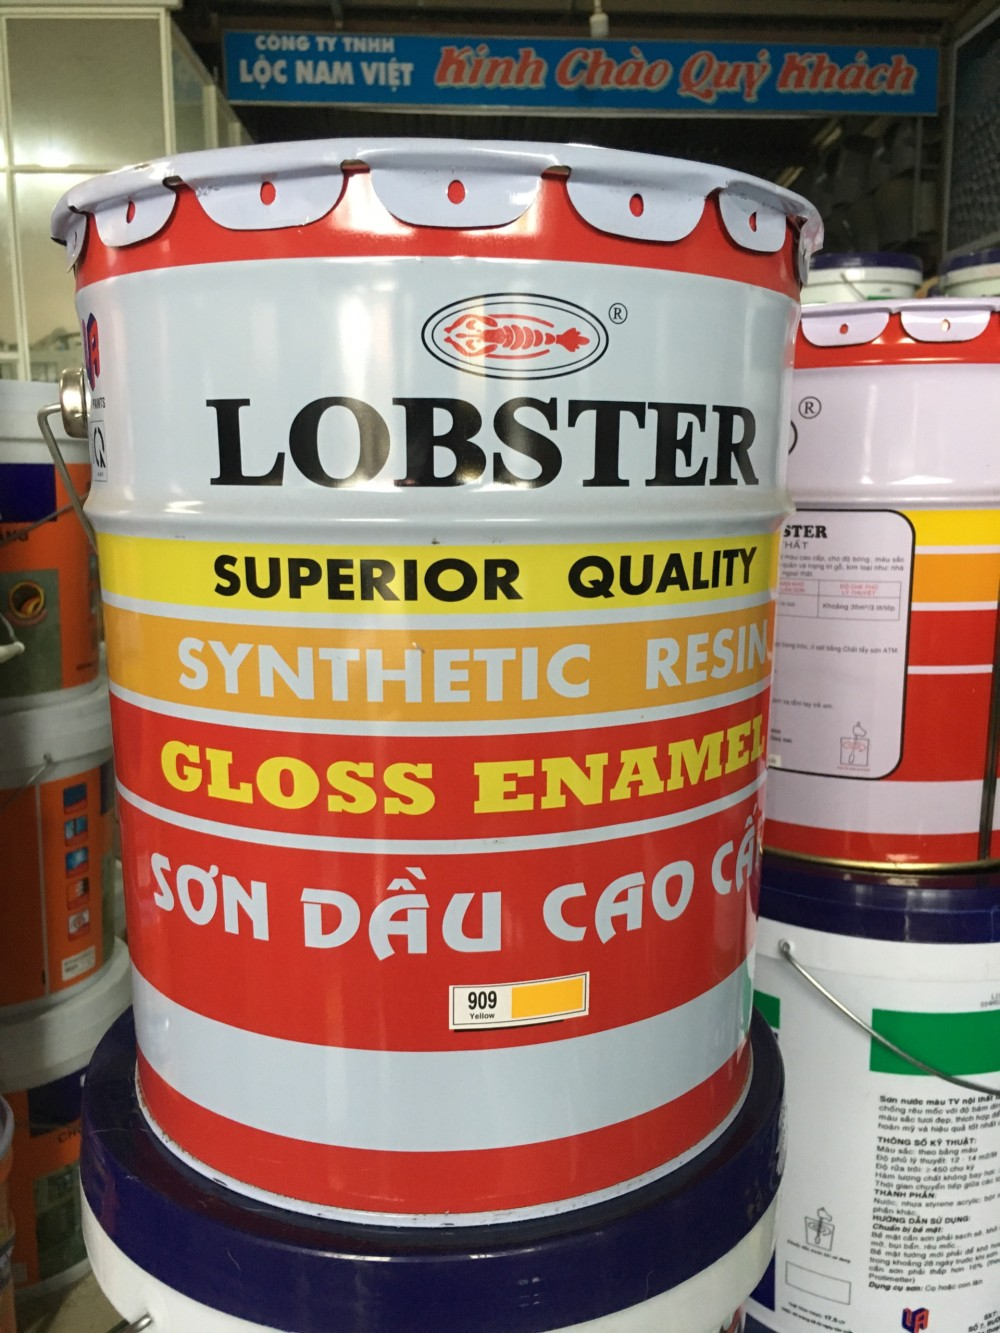 SON DAU LOBSTER 909.jpg